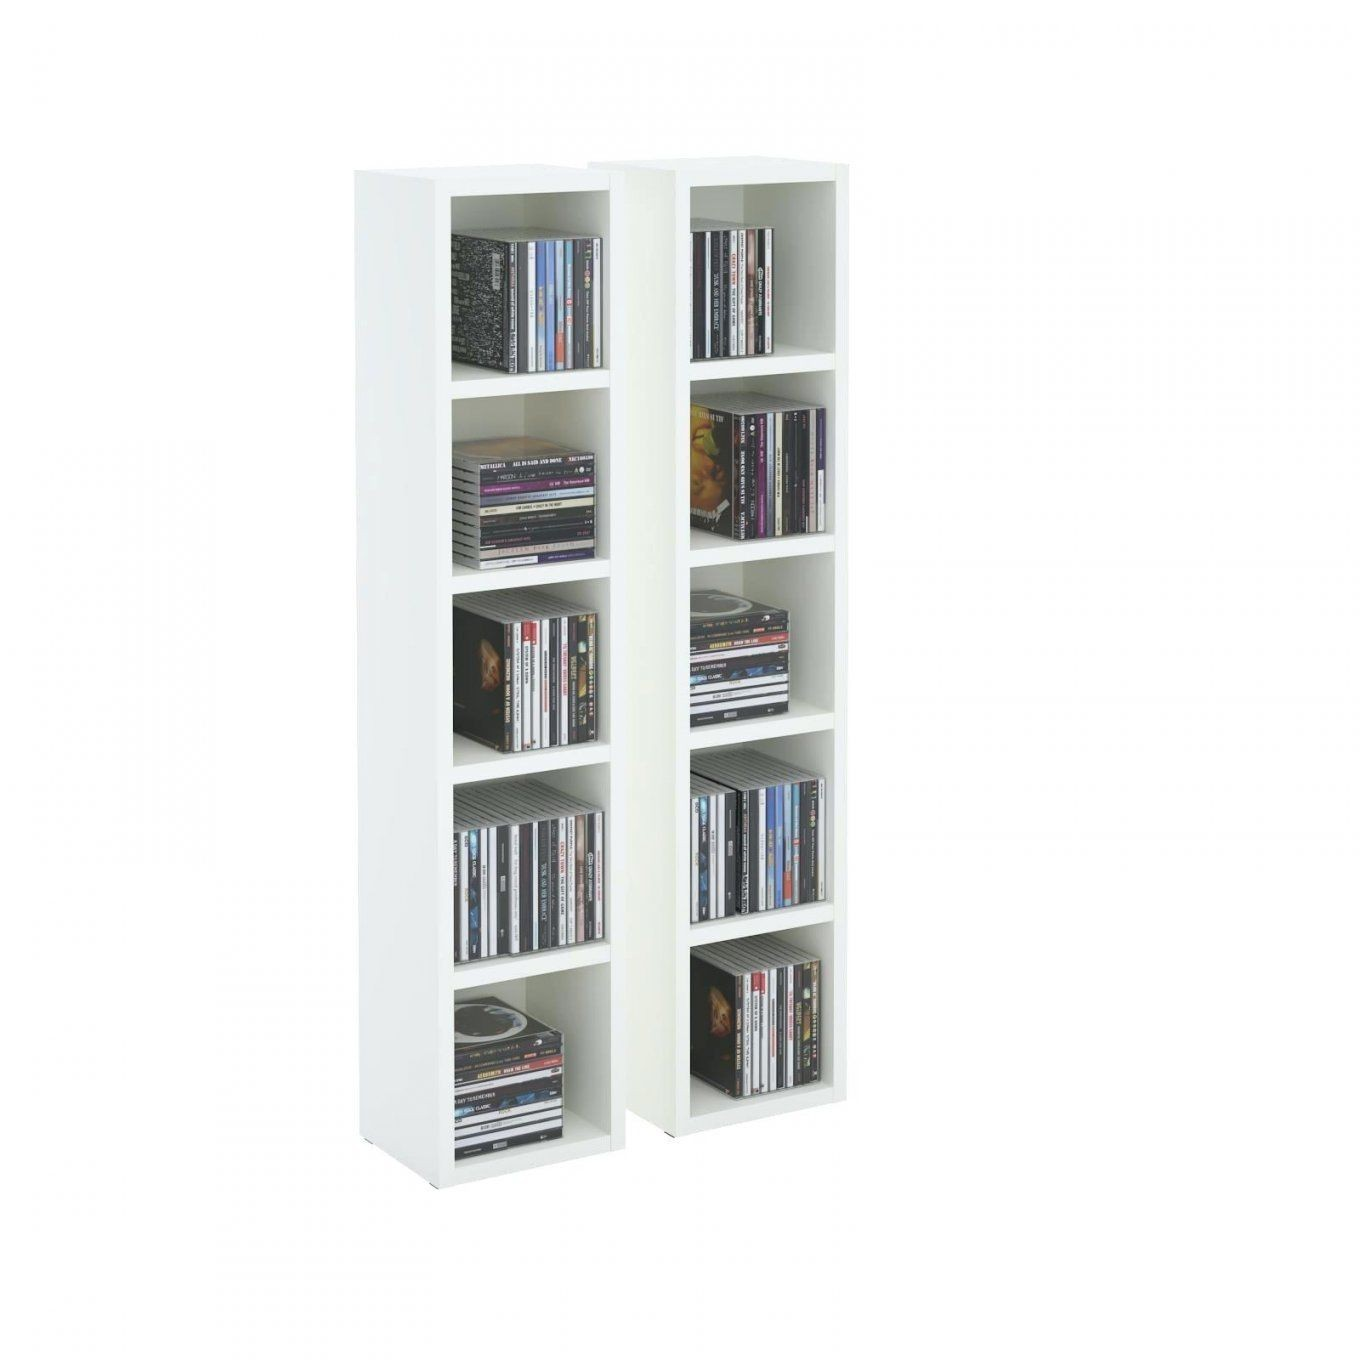 Regal Dvd Amazing With Cd 4700 Divx Player Glas Metall Ikea Gnedby von Ikea Regal Metall Glas Photo